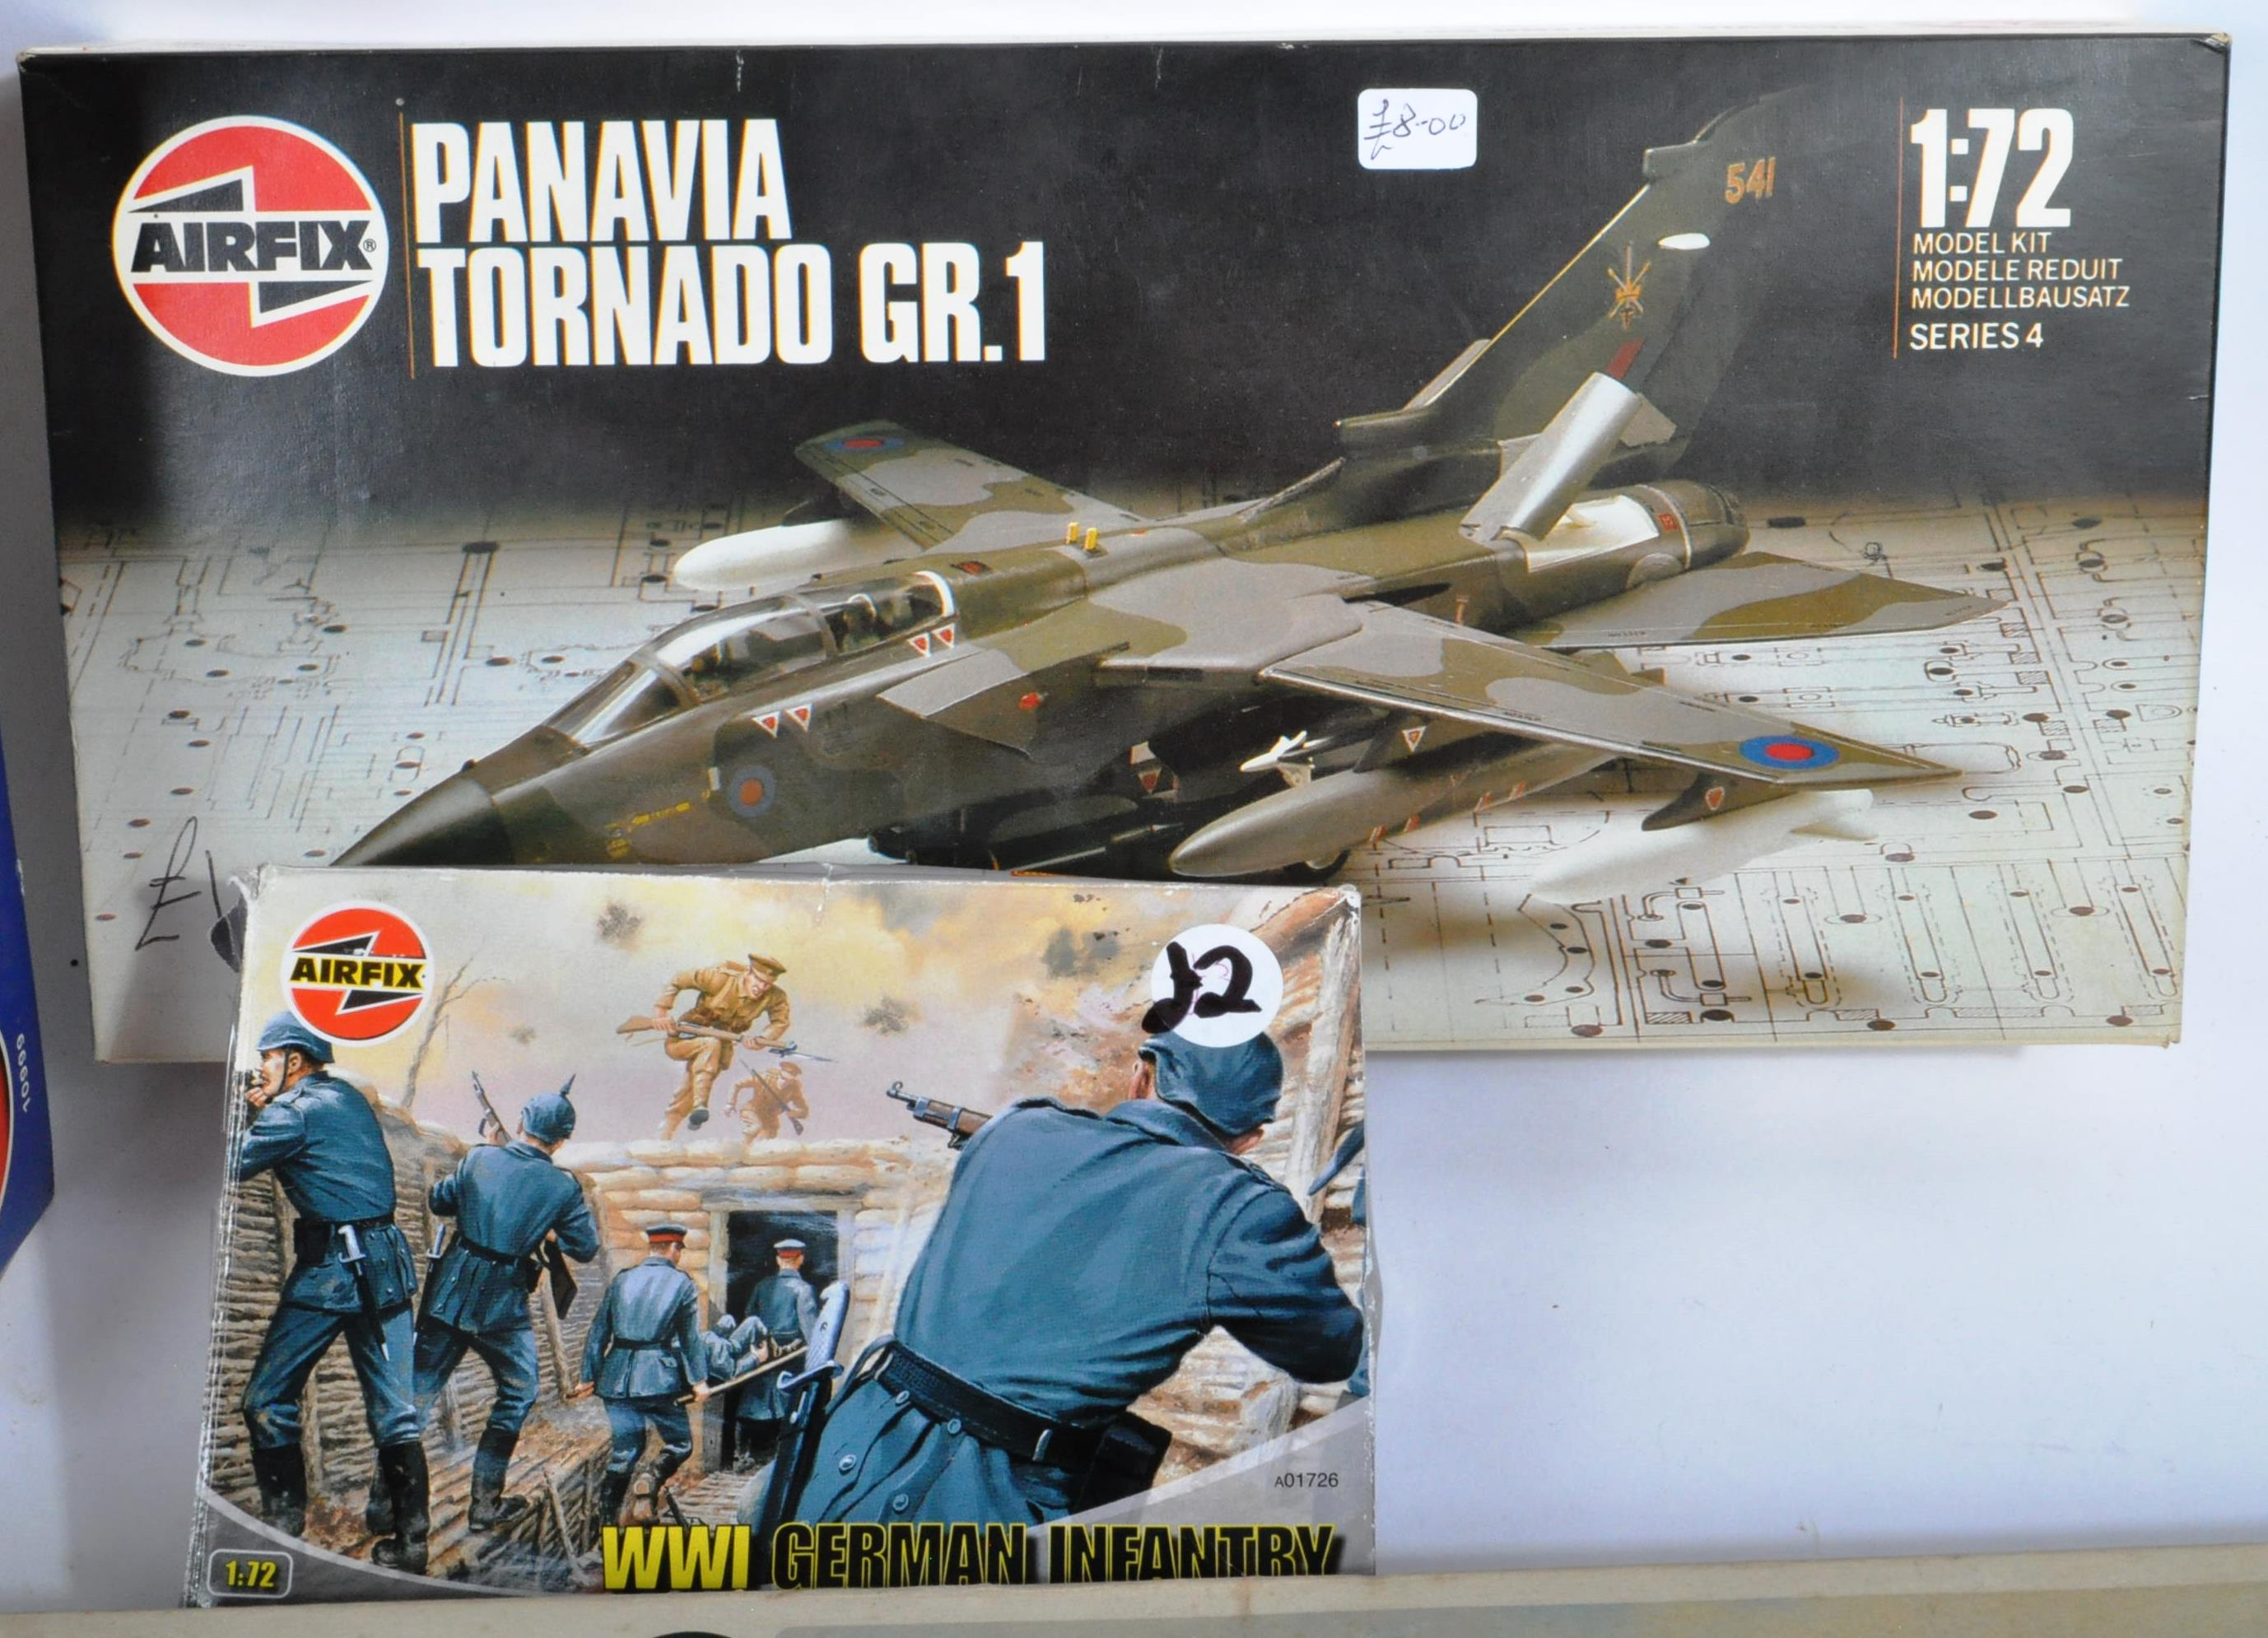 COLLECTION OF ASSORTED AIRFIX AND REVELL PLASTIC MODEL KITS - Image 4 of 8